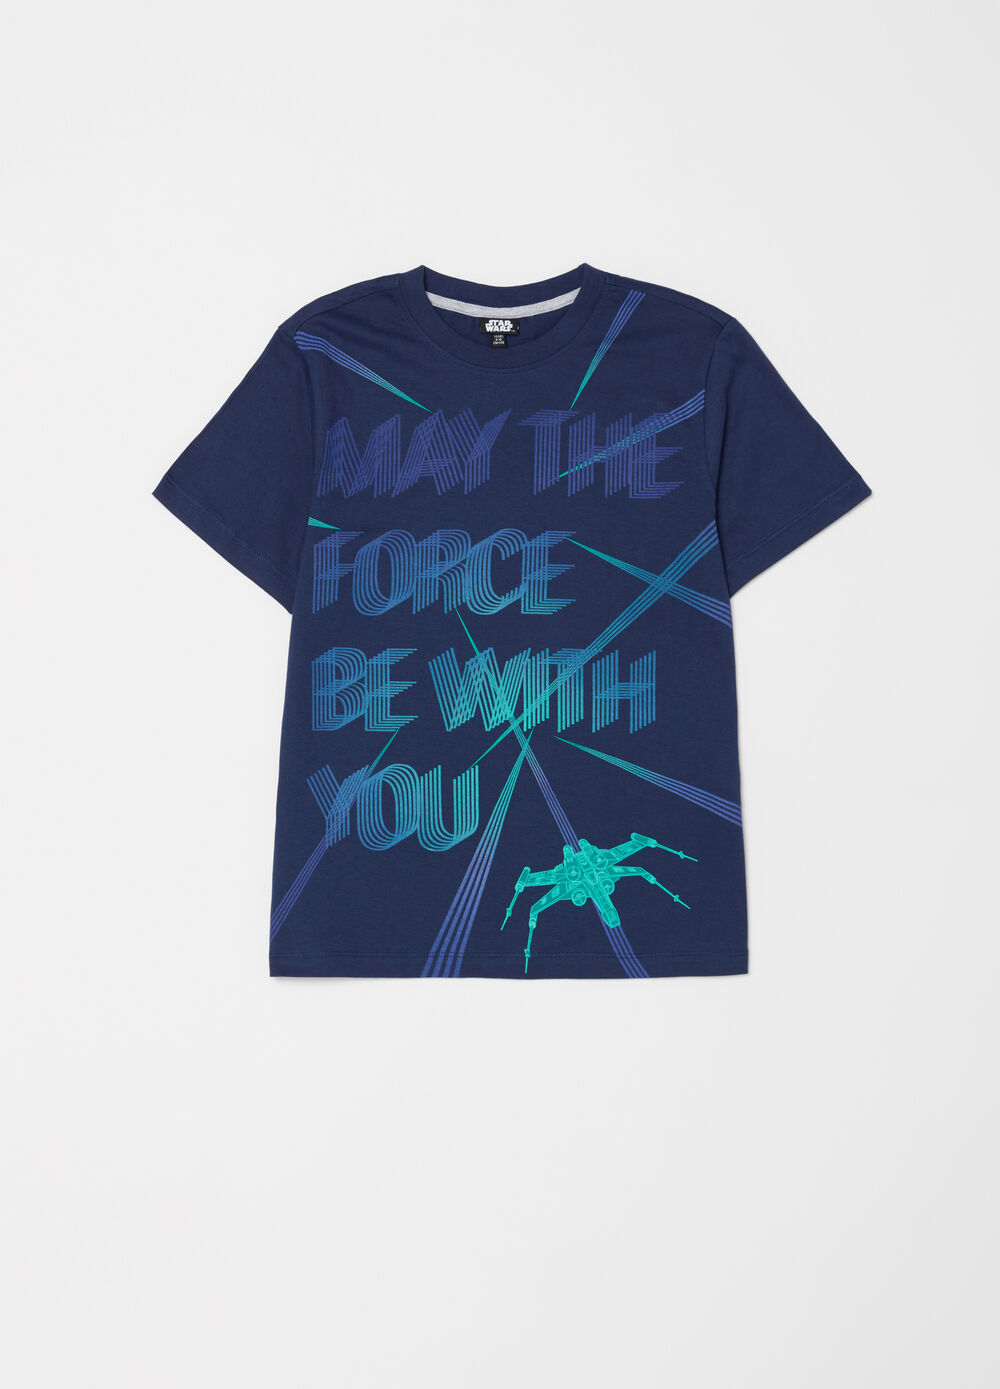 Star Wars lightweight jersey pyjamas